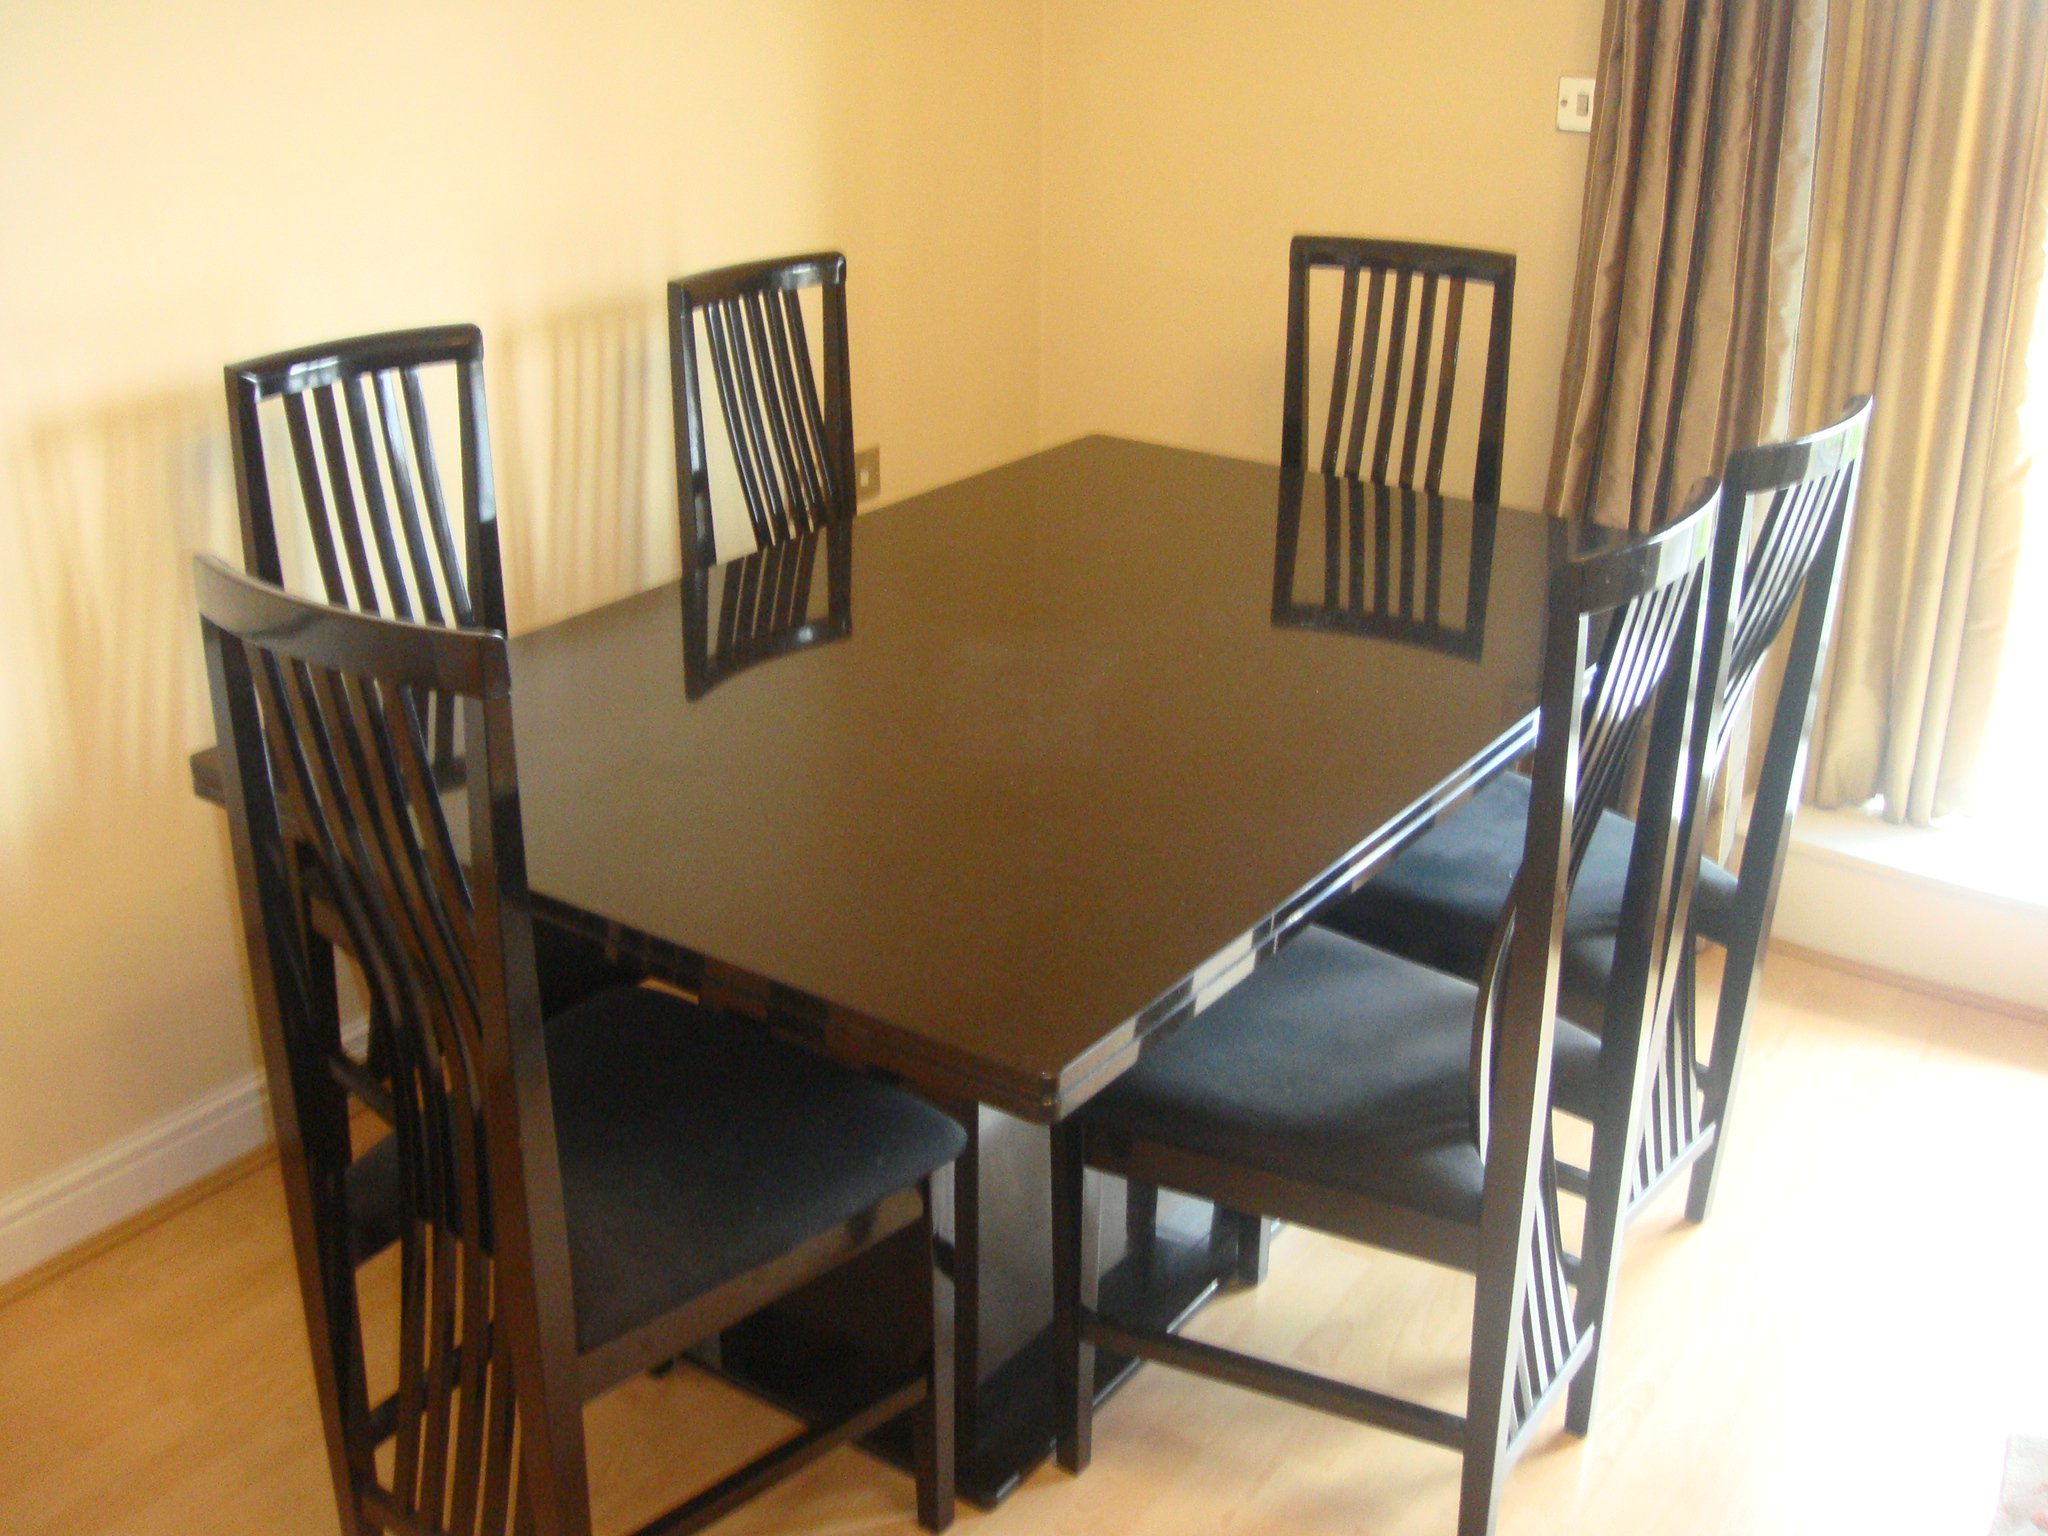 Dining table second hand dining table chairs manchester - Second hand dining tables ...